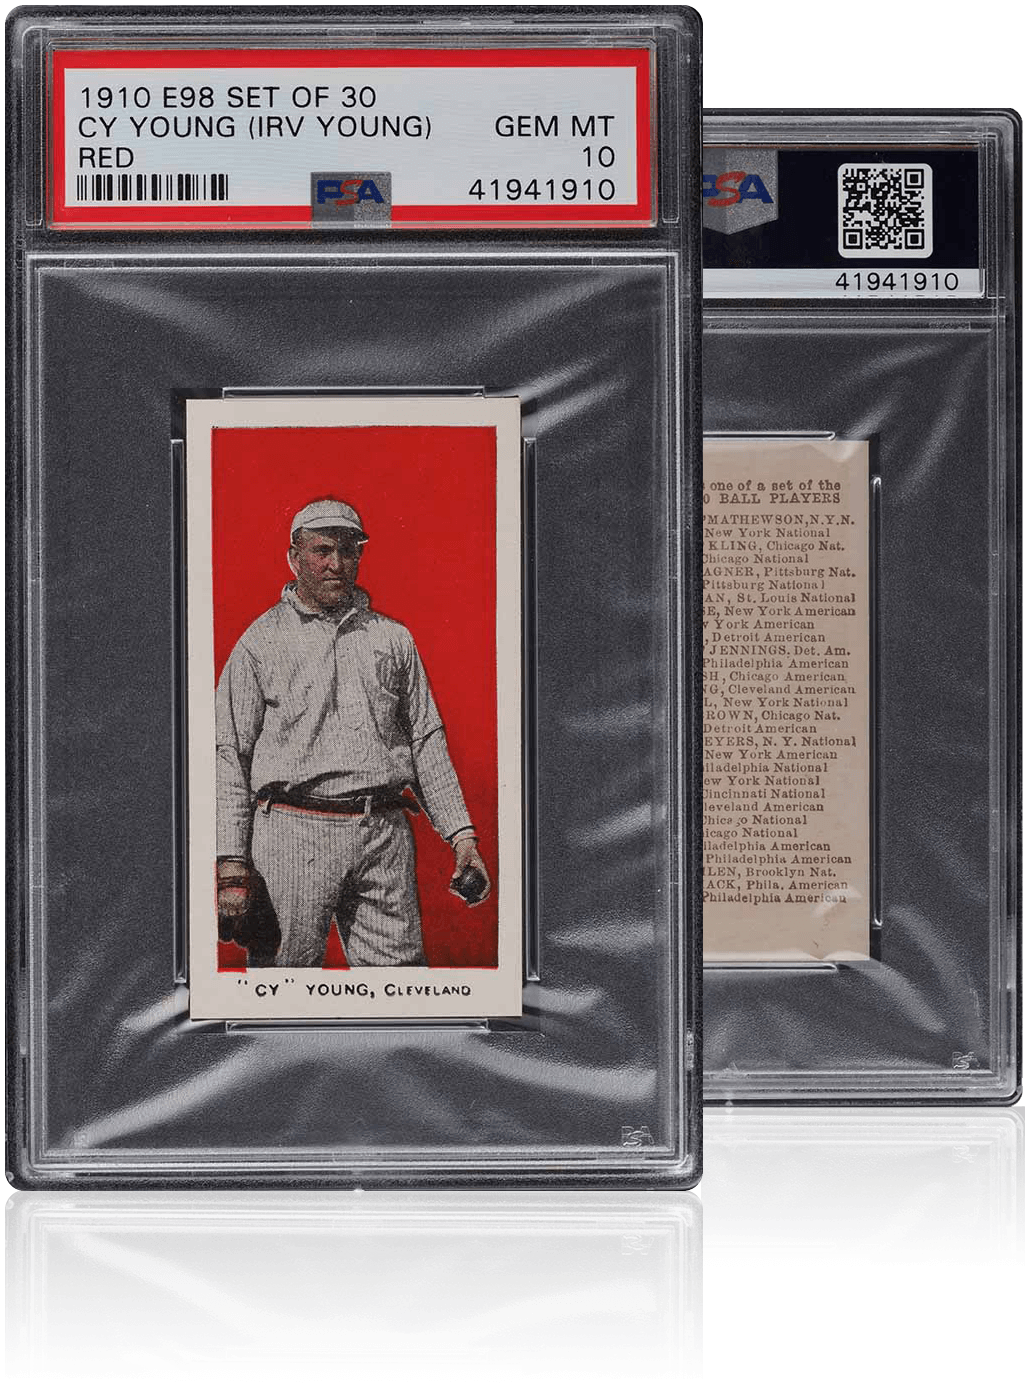 Cy Young Card